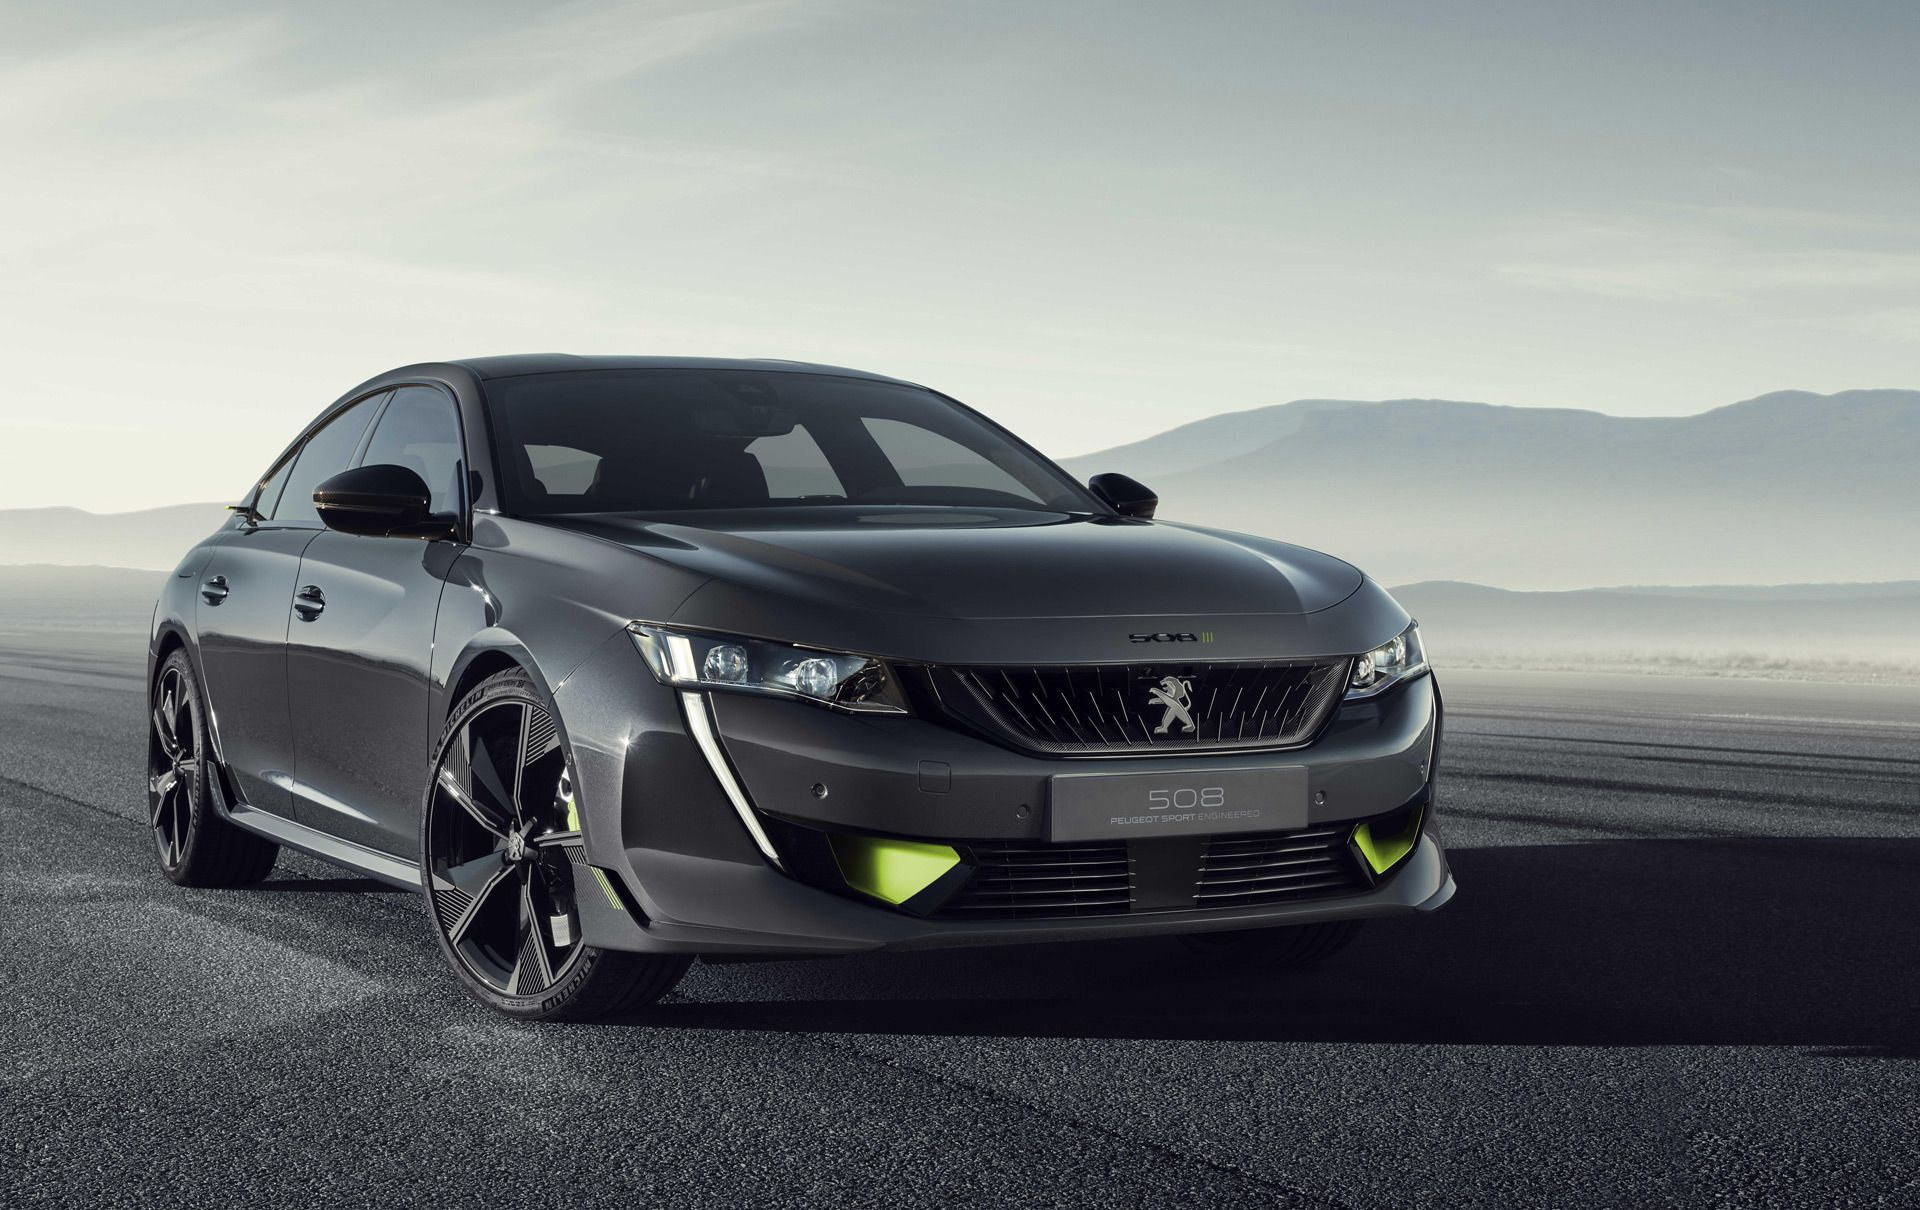 Peugeot Previews Performance Hybrid Lineup With 508 Sport Sedan